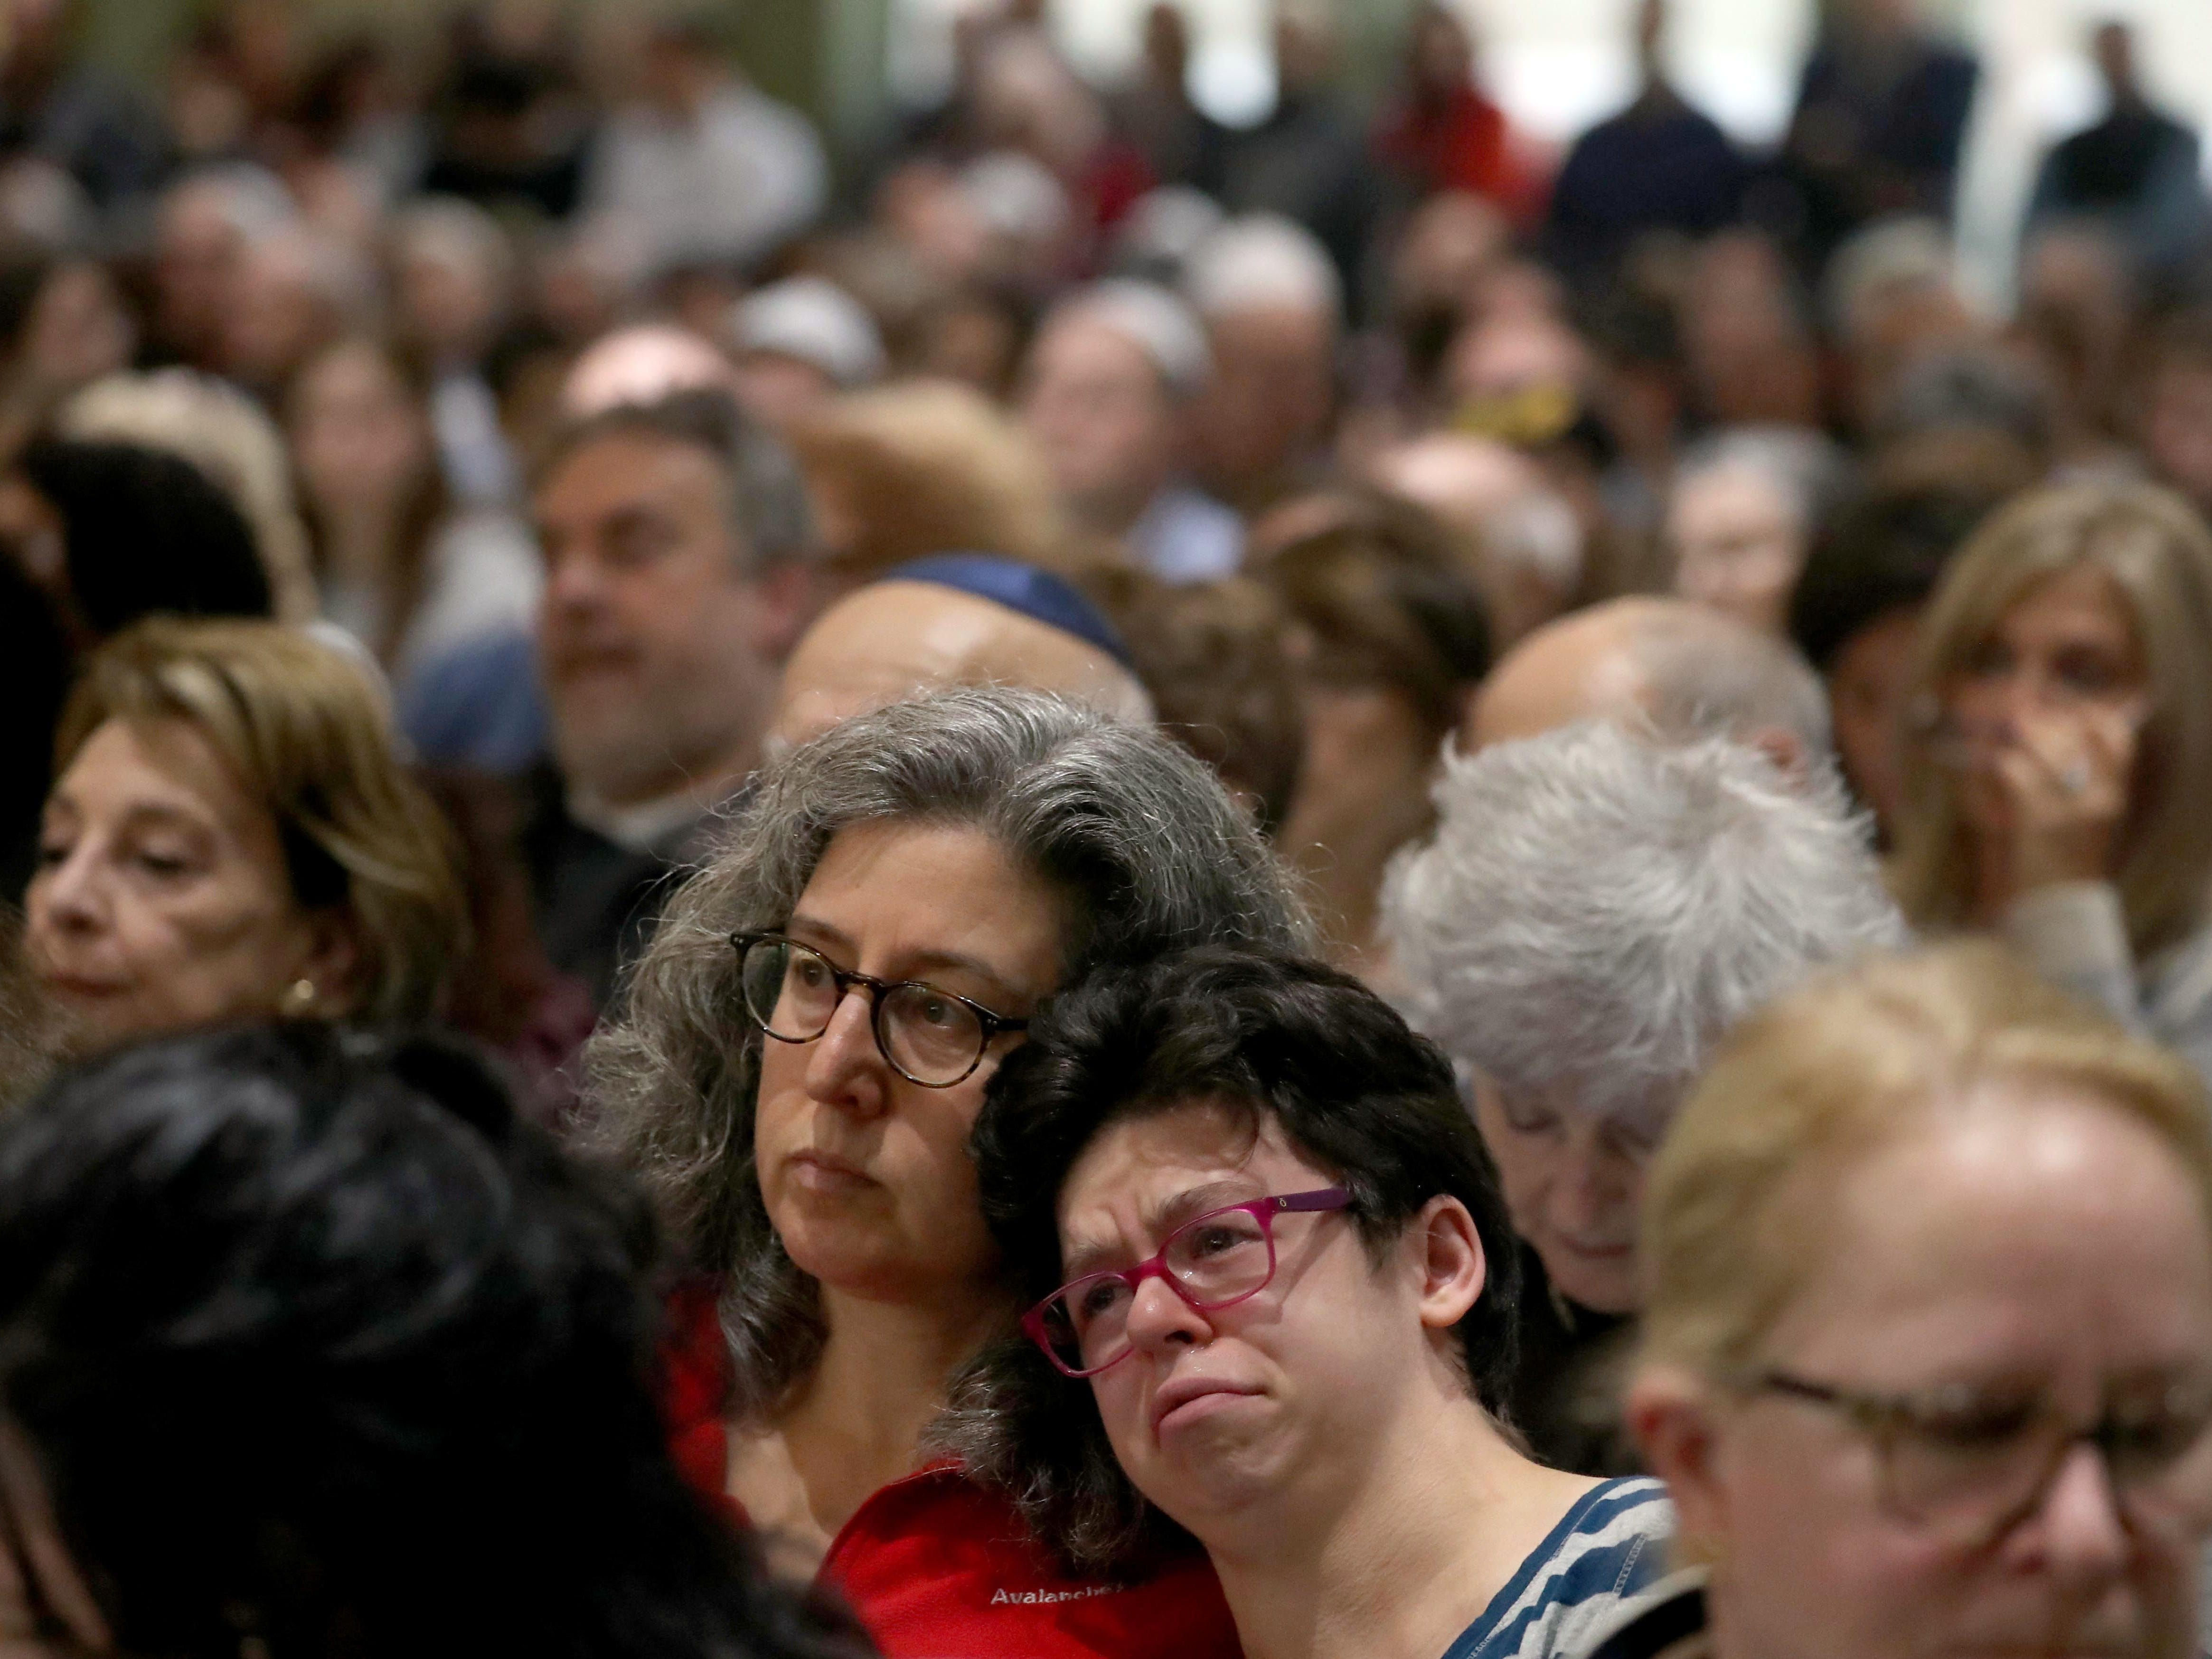 Hundreds of area residents filled the seats and stood during a vigil at Congregation Kol Ami in White Plains, N.Y. on Oct. 28, 2018, in response to the mass shooting at the Tree of Life Congregation synagogue in Pittsburgh synagogue. The vigil was organized by several Westchester County based Jewish organizations.